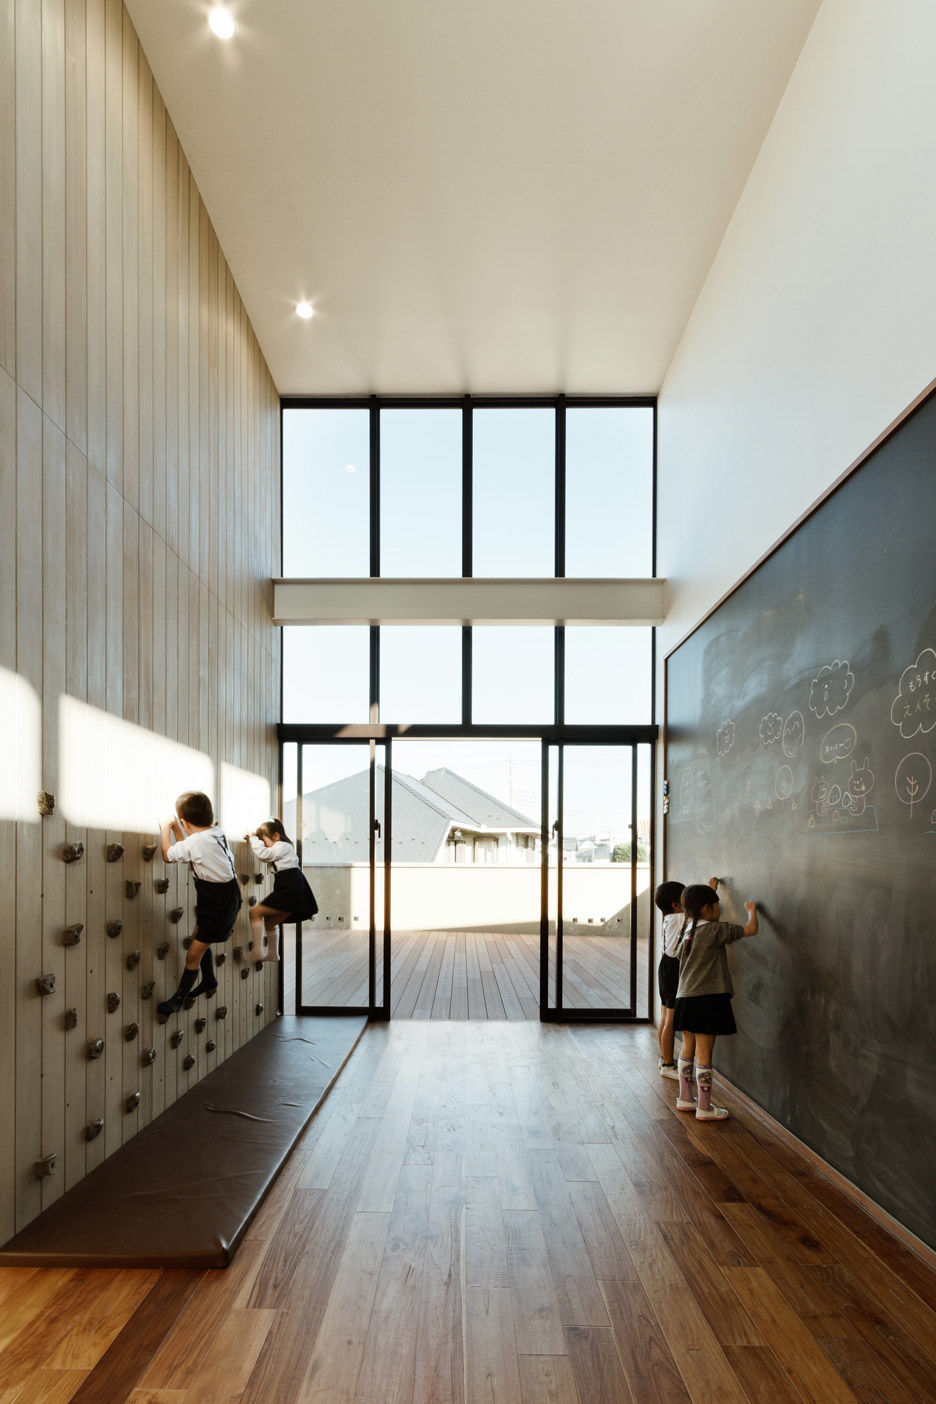 Rock Climbing Wall In School 683x1024 22 Awesome Ideas For Your Home